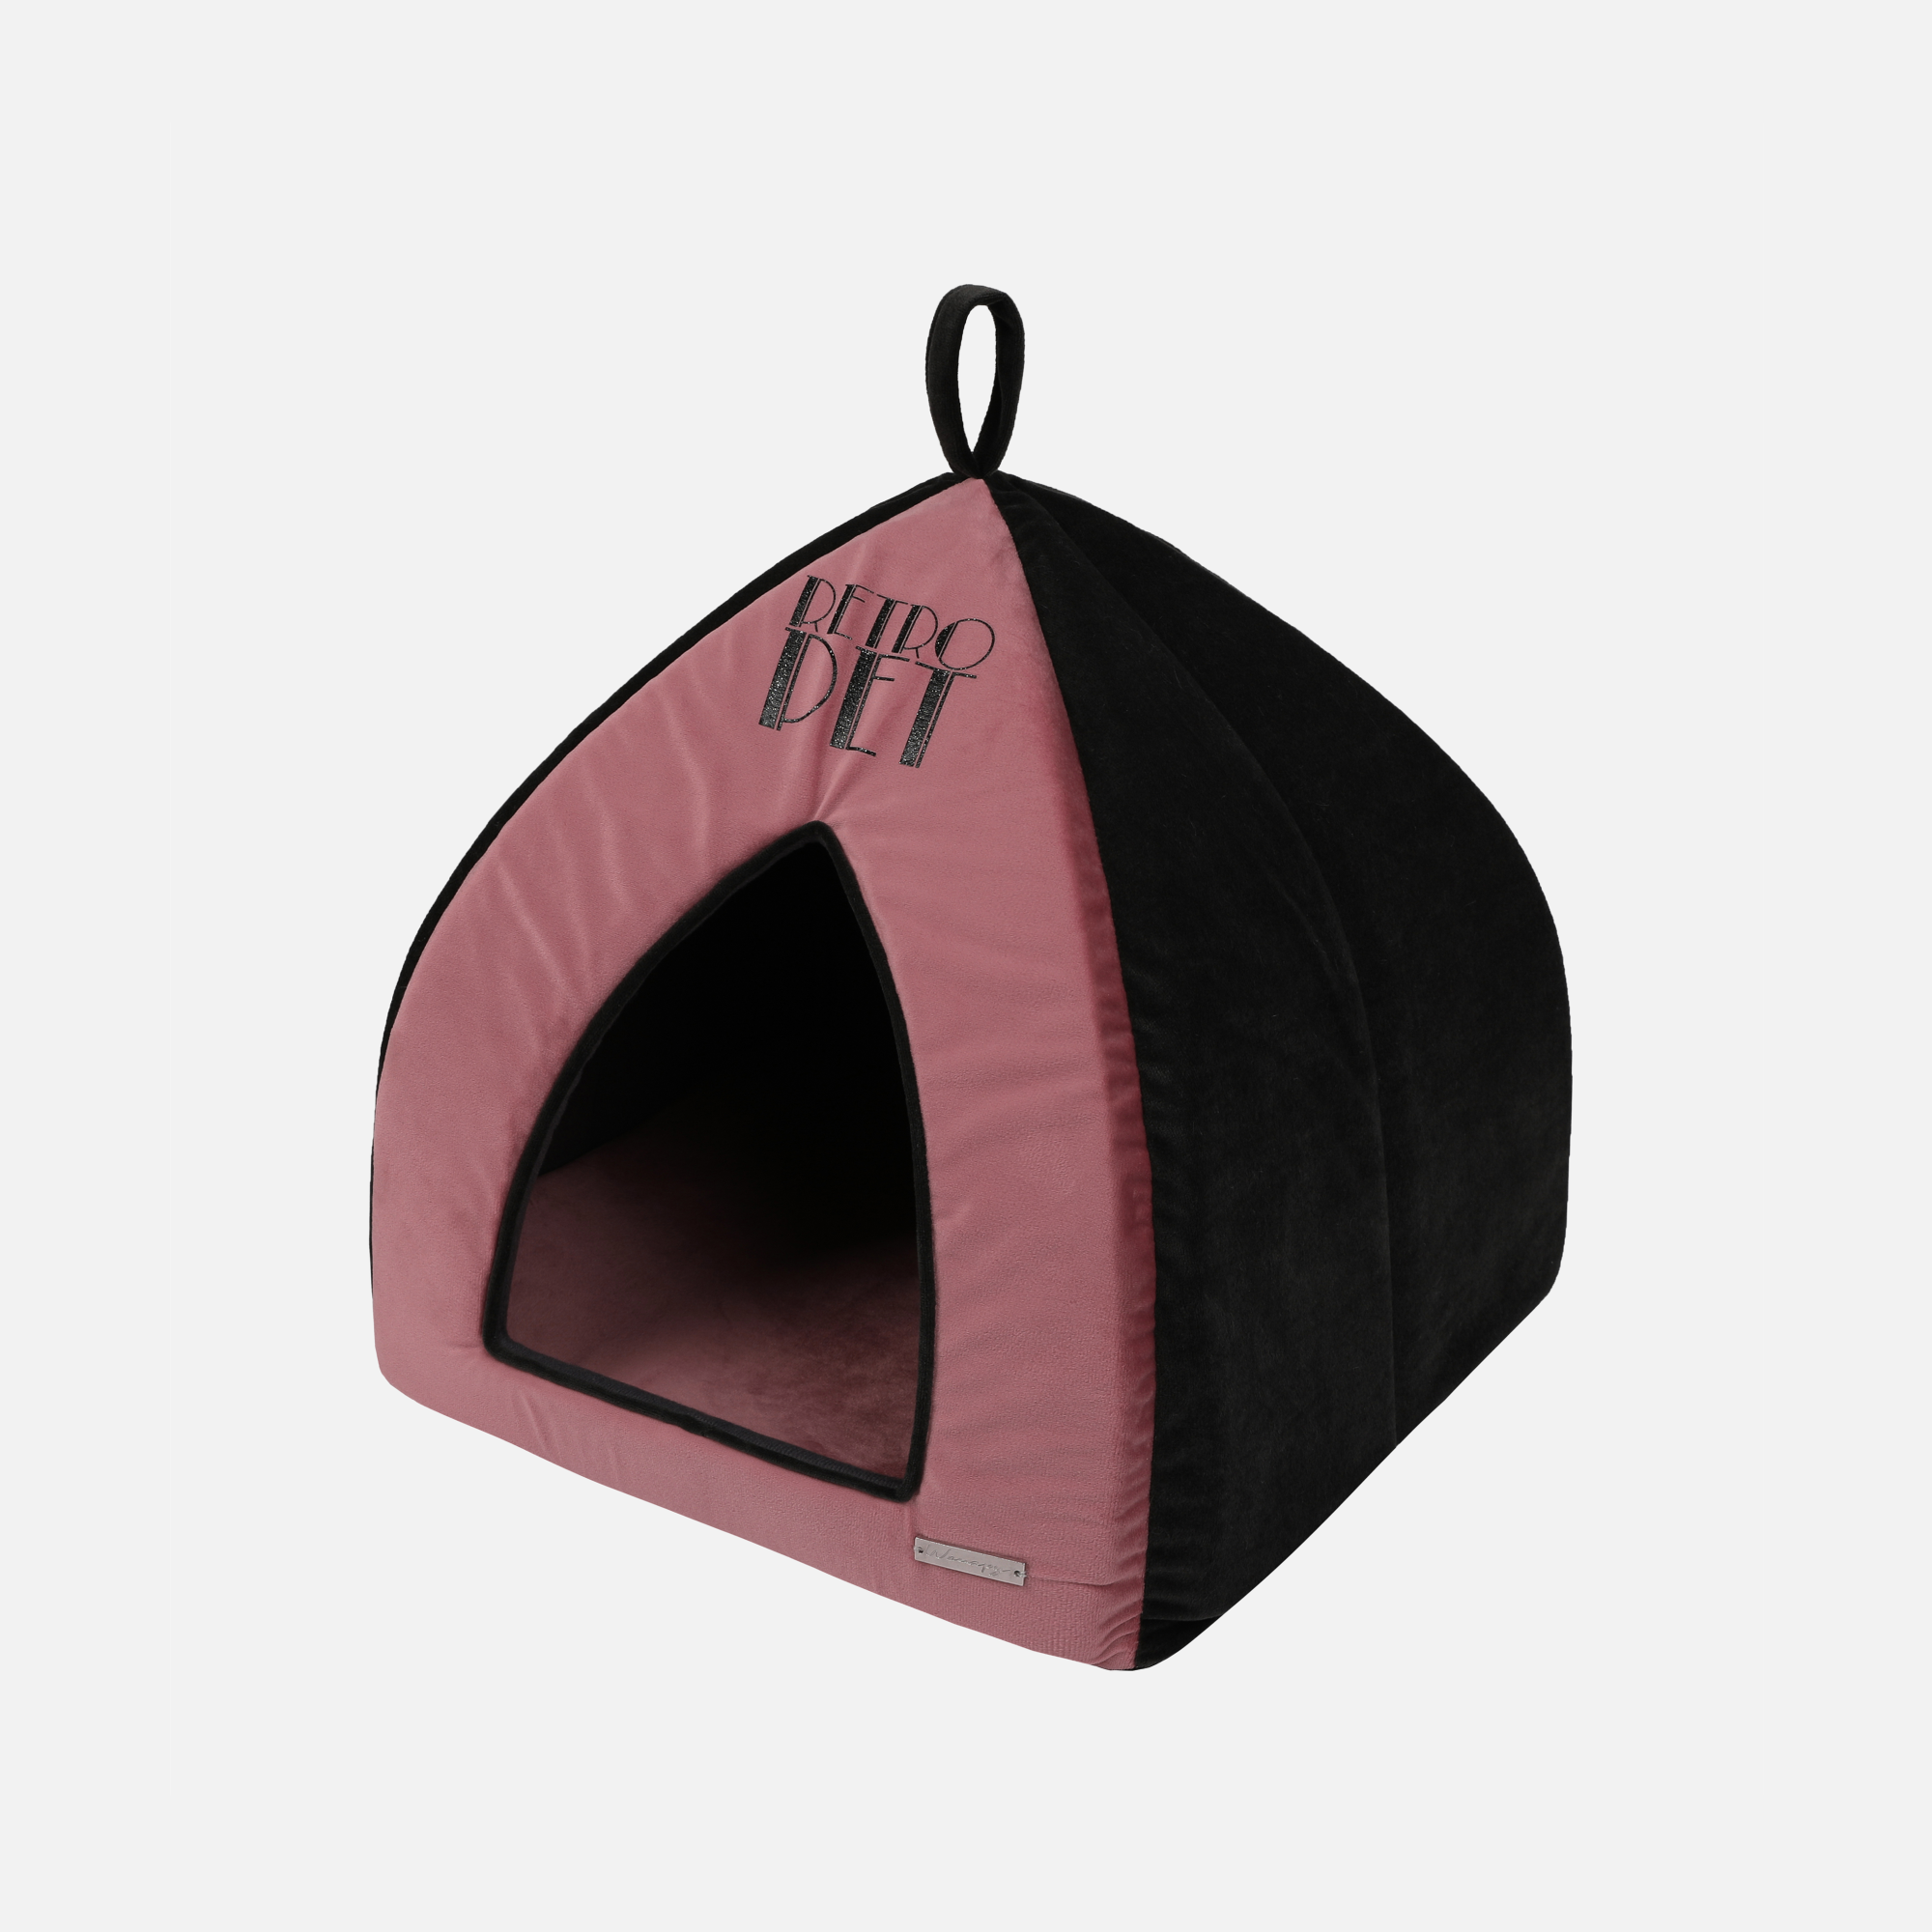 Igloo Retro Pet par Wouapy